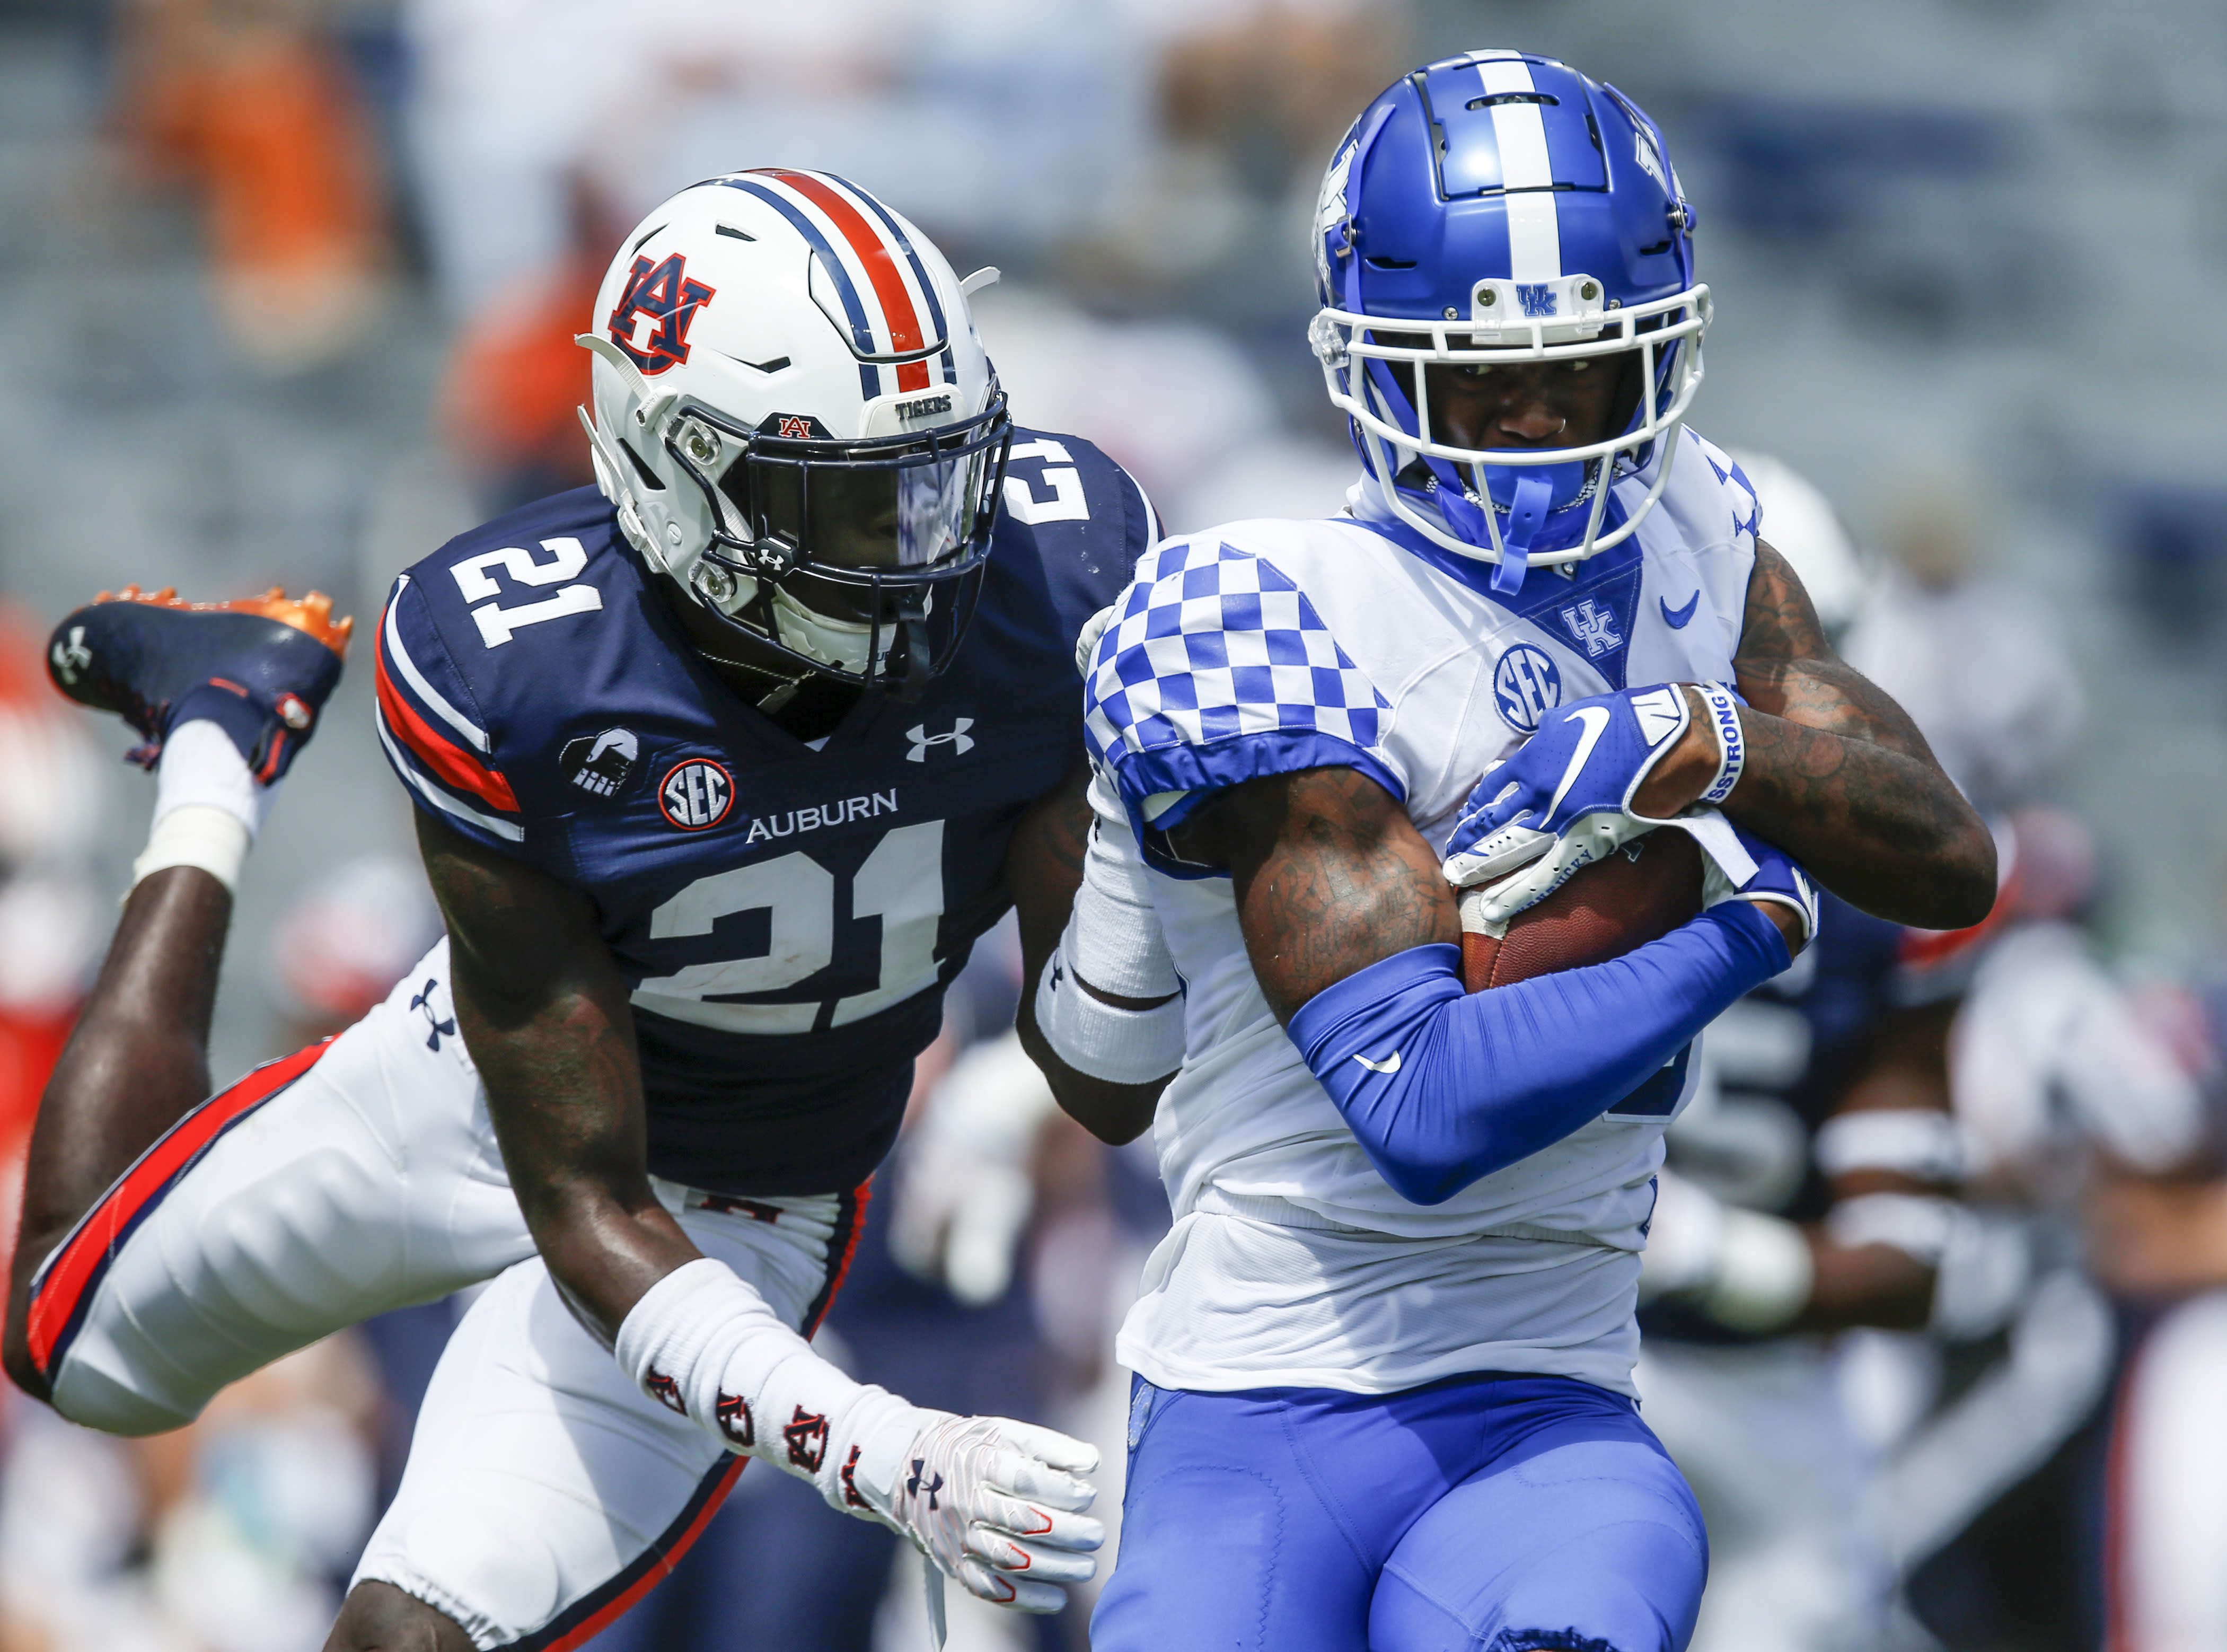 Kentucky wide receiver Allen Dailey Jr. (89) is tacked by Auburn defensive back Smoke Monday (21) after a reception during the second quarter of an NCAA college football game on Saturday, Sept. 26, 2020, in Auburn, Ala. (AP Photo/Butch Dill)